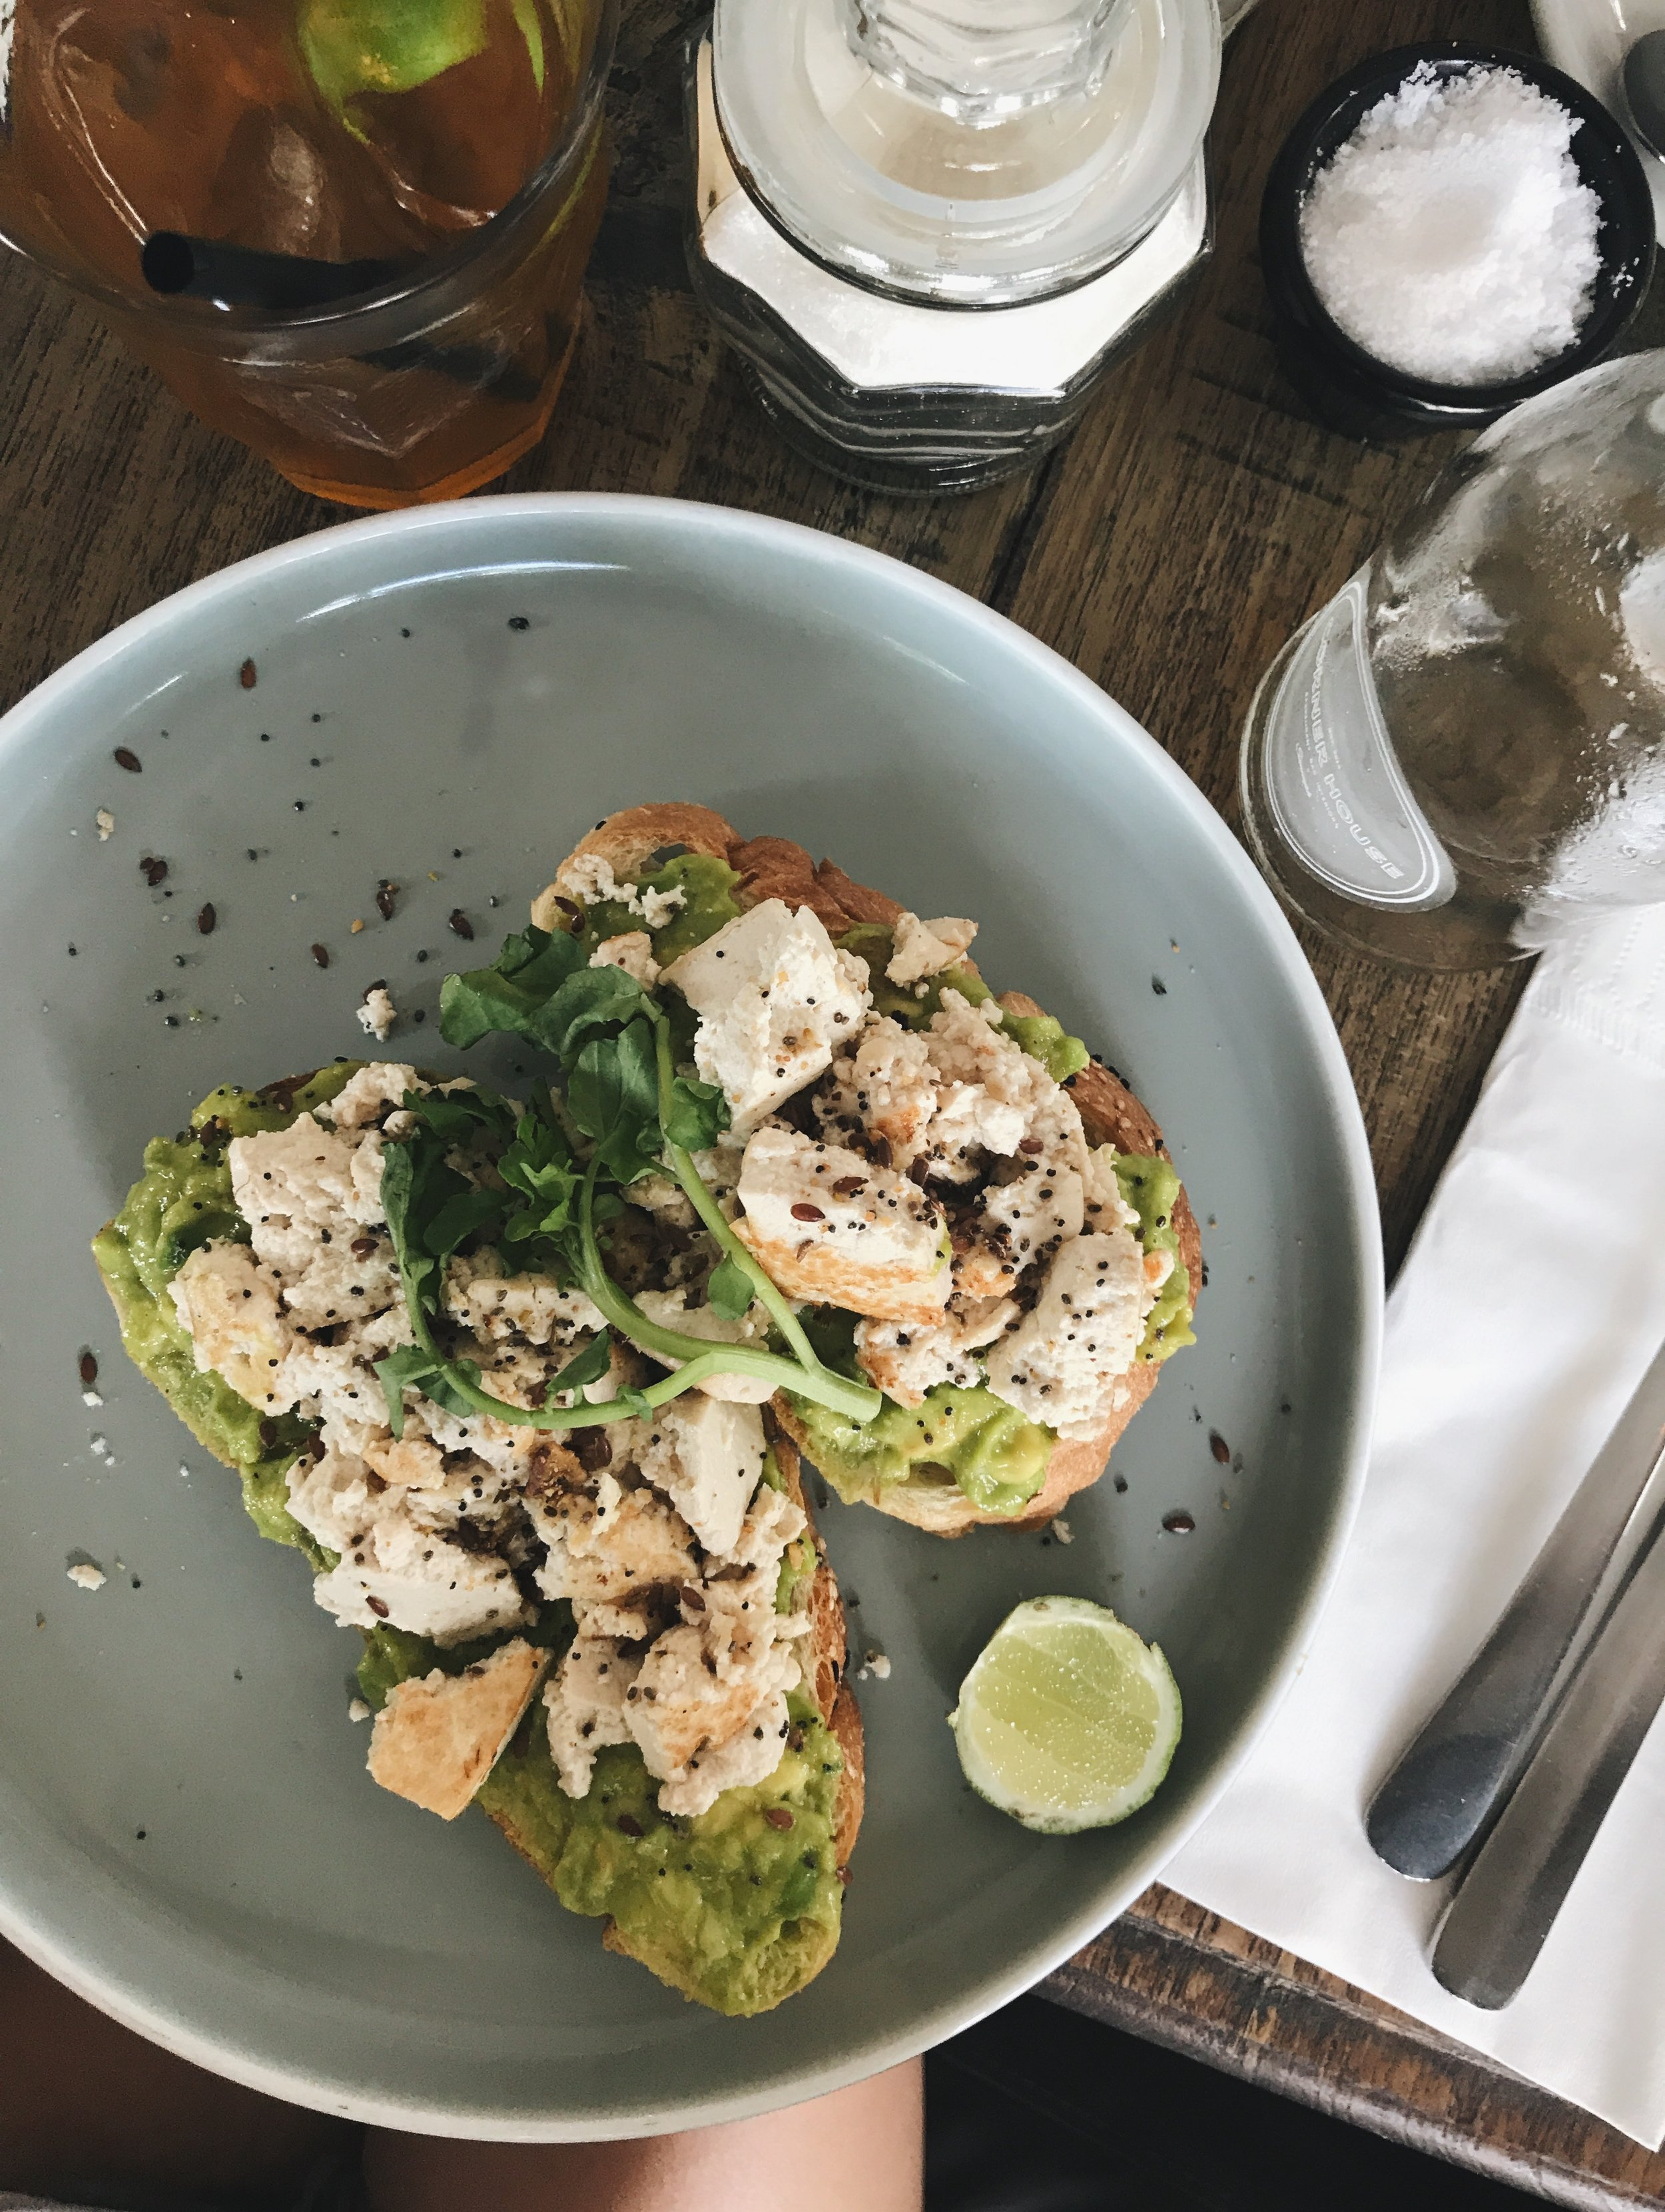 Avo toast with eggs changed to tofu